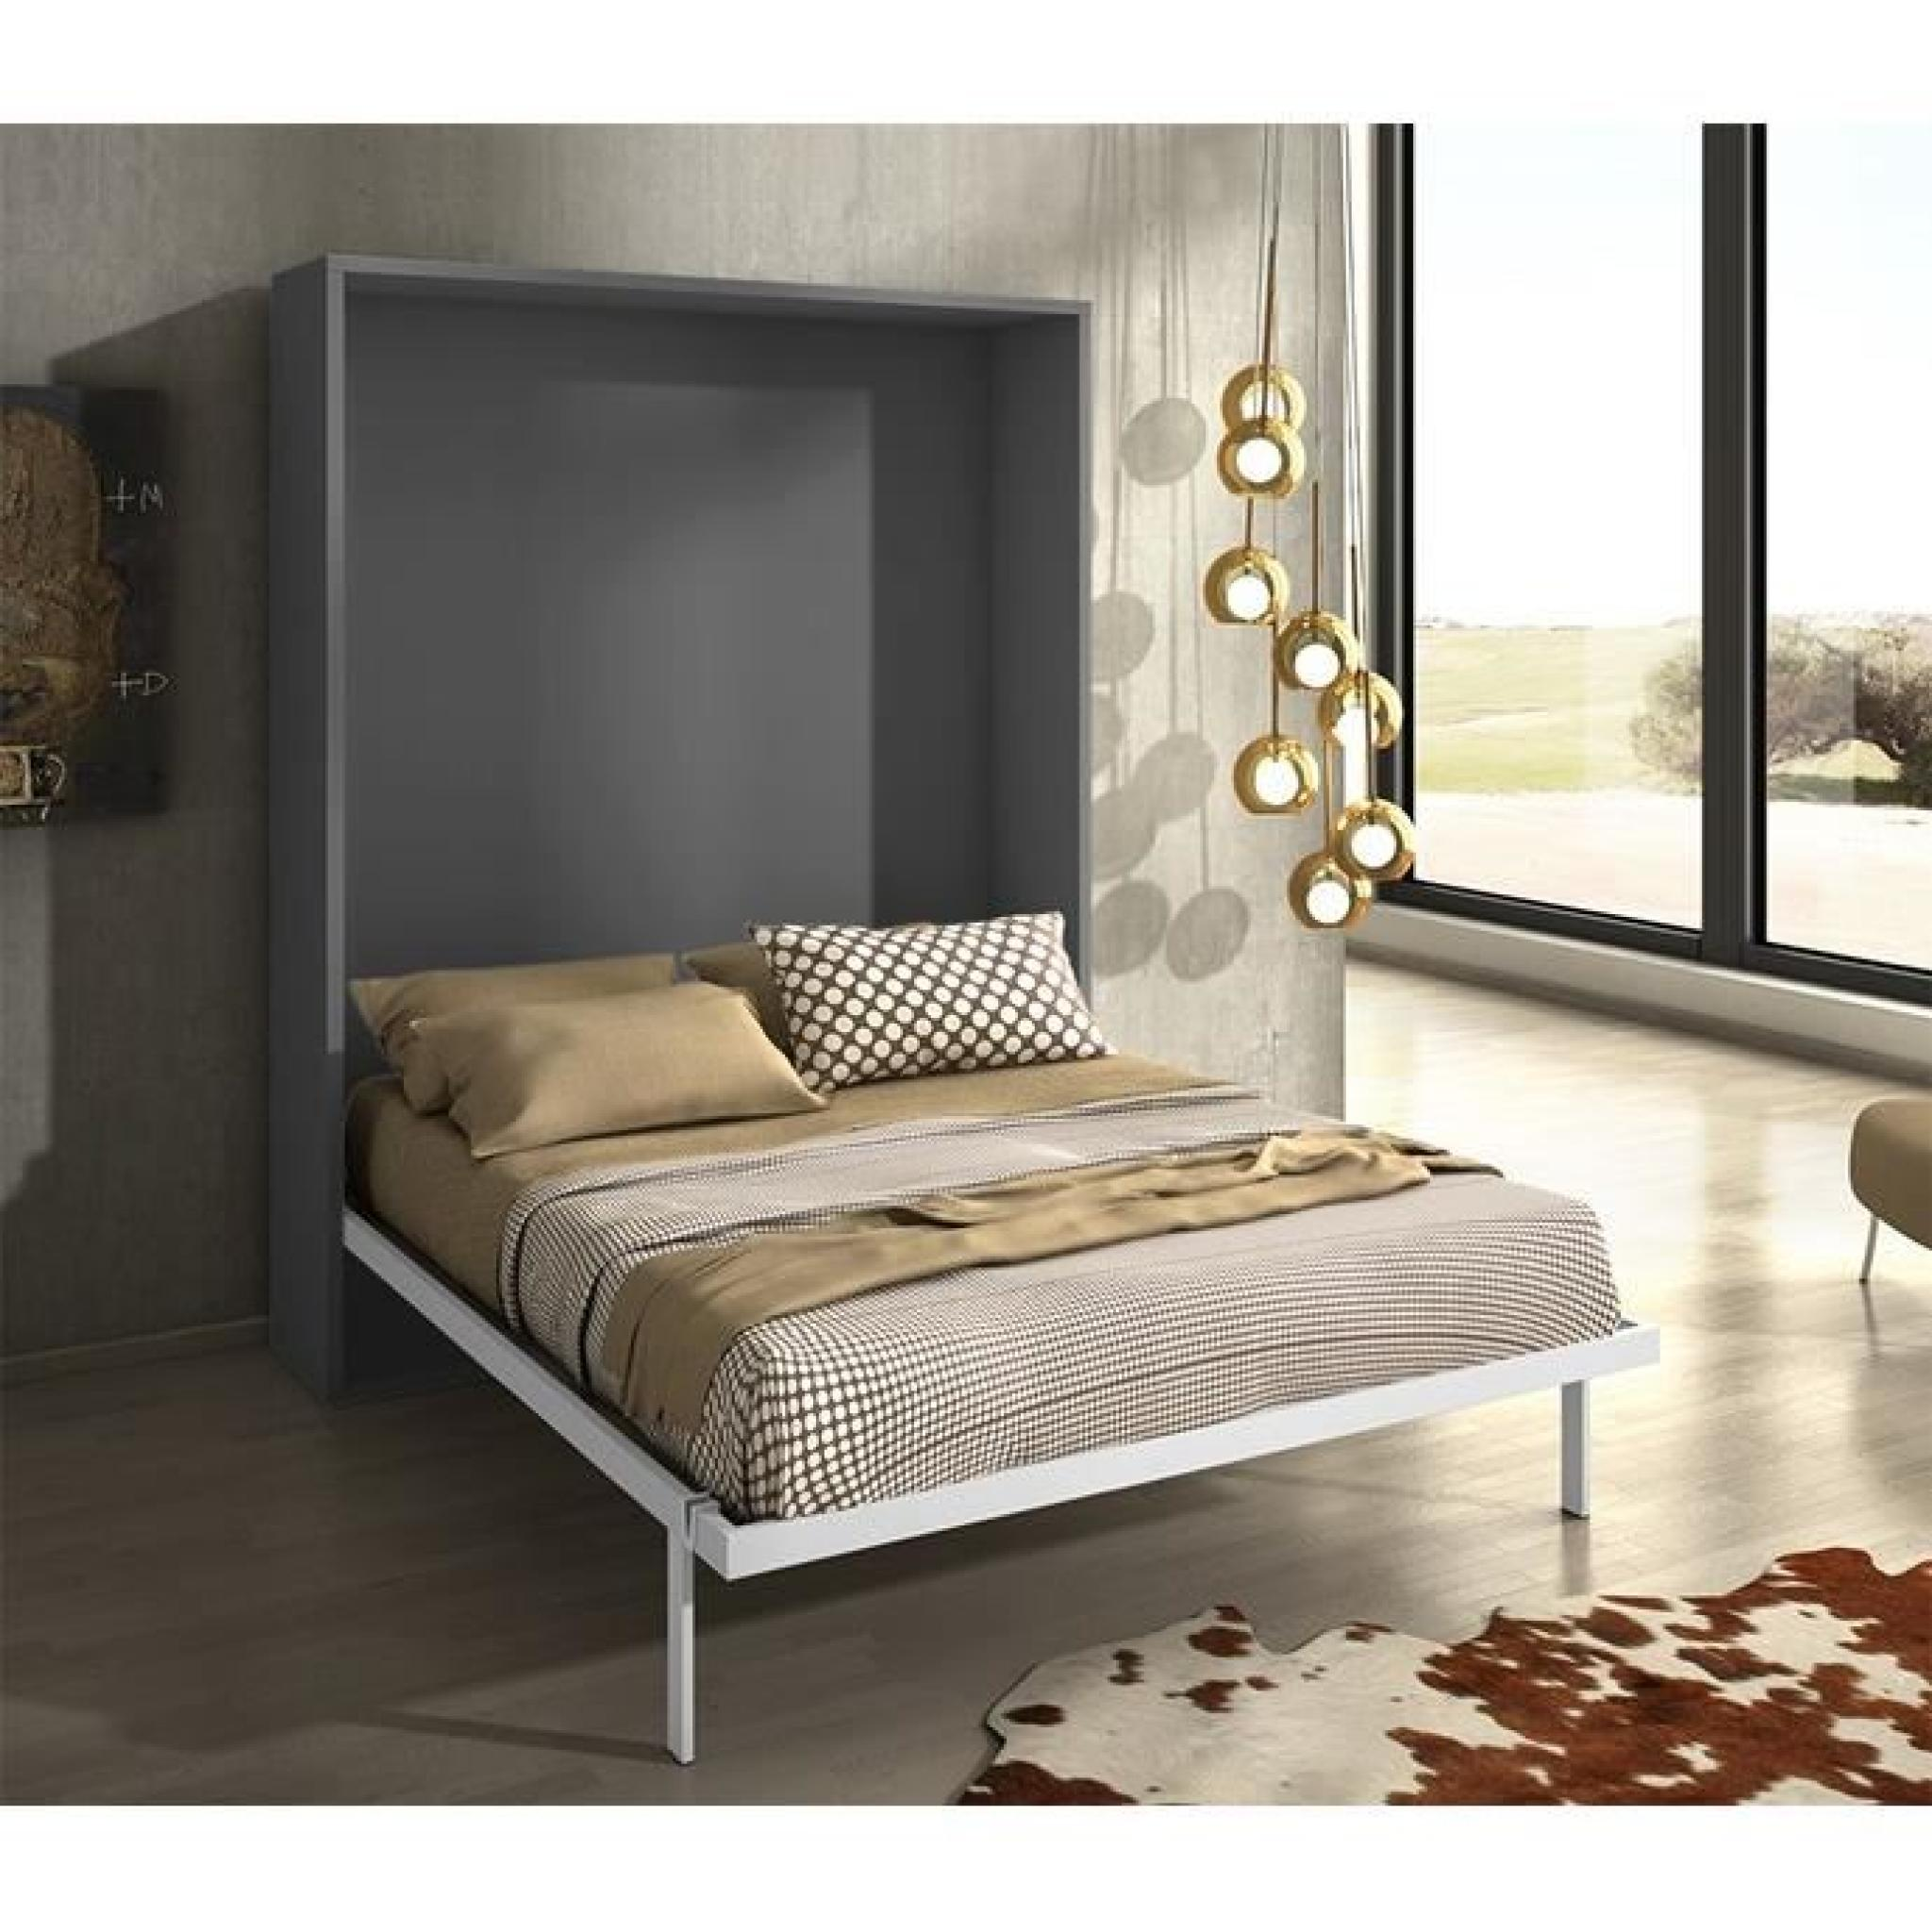 armoire lit escamotable joy gris mat 160x200 achat vente. Black Bedroom Furniture Sets. Home Design Ideas